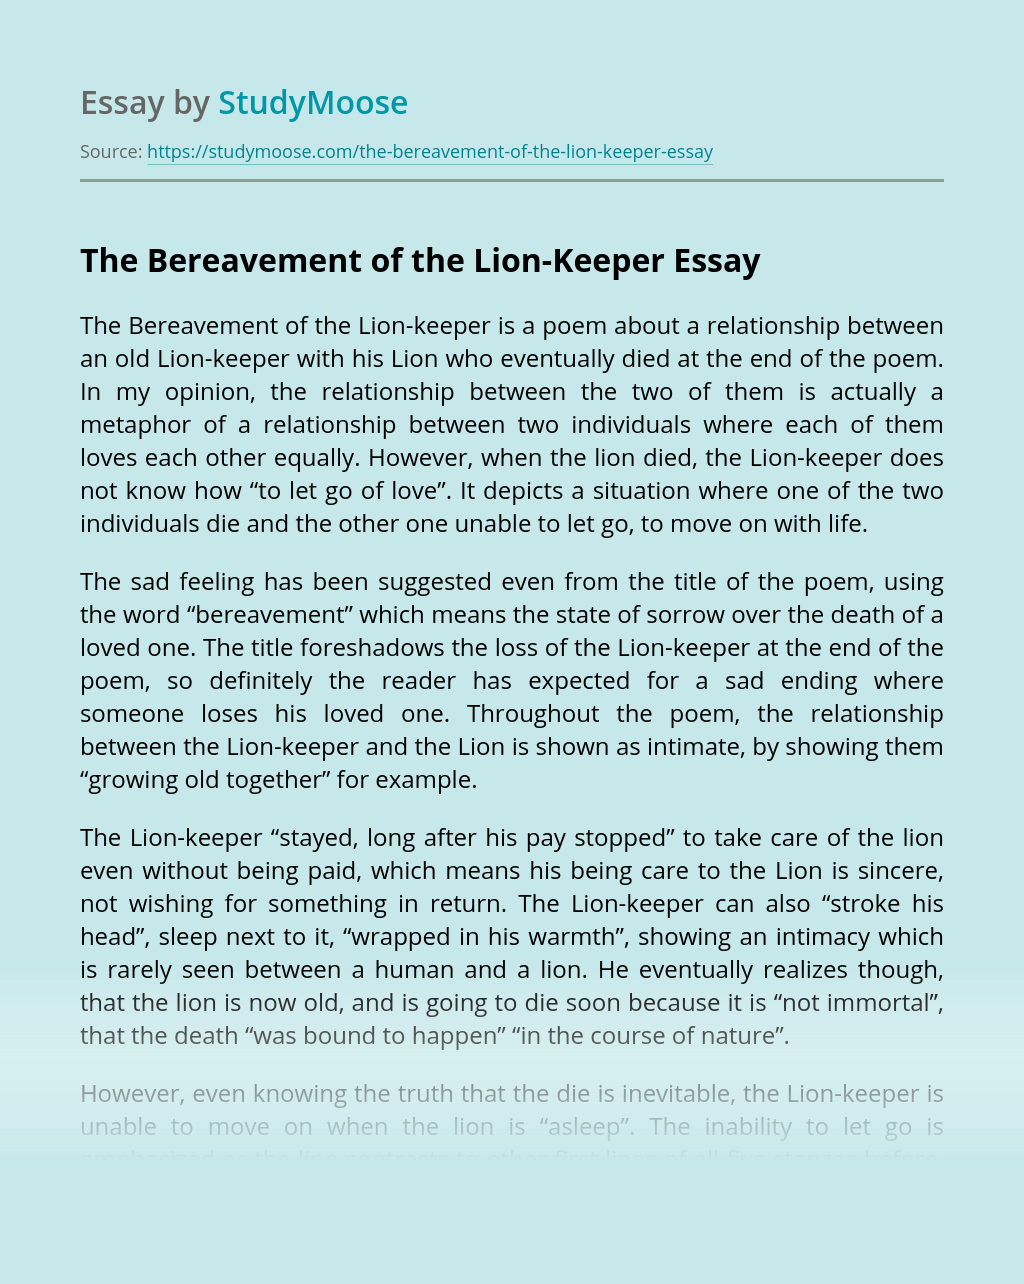 The Bereavement of the Lion-Keeper